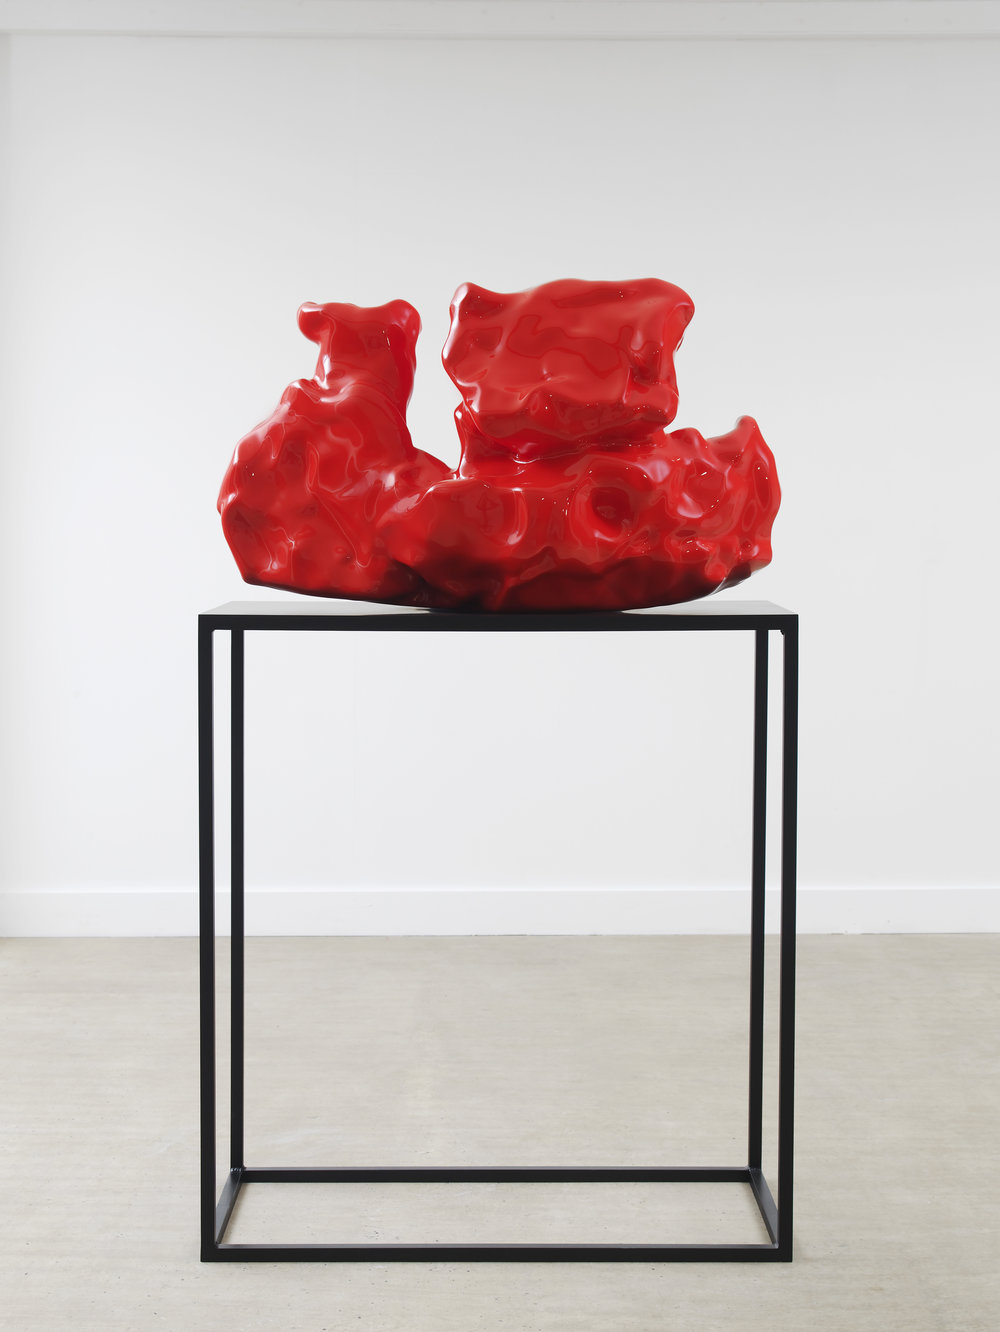 Summa Theologica V,     CNC milled Resin finished in Red, 117x80x55cm Augustine Carr, 2017